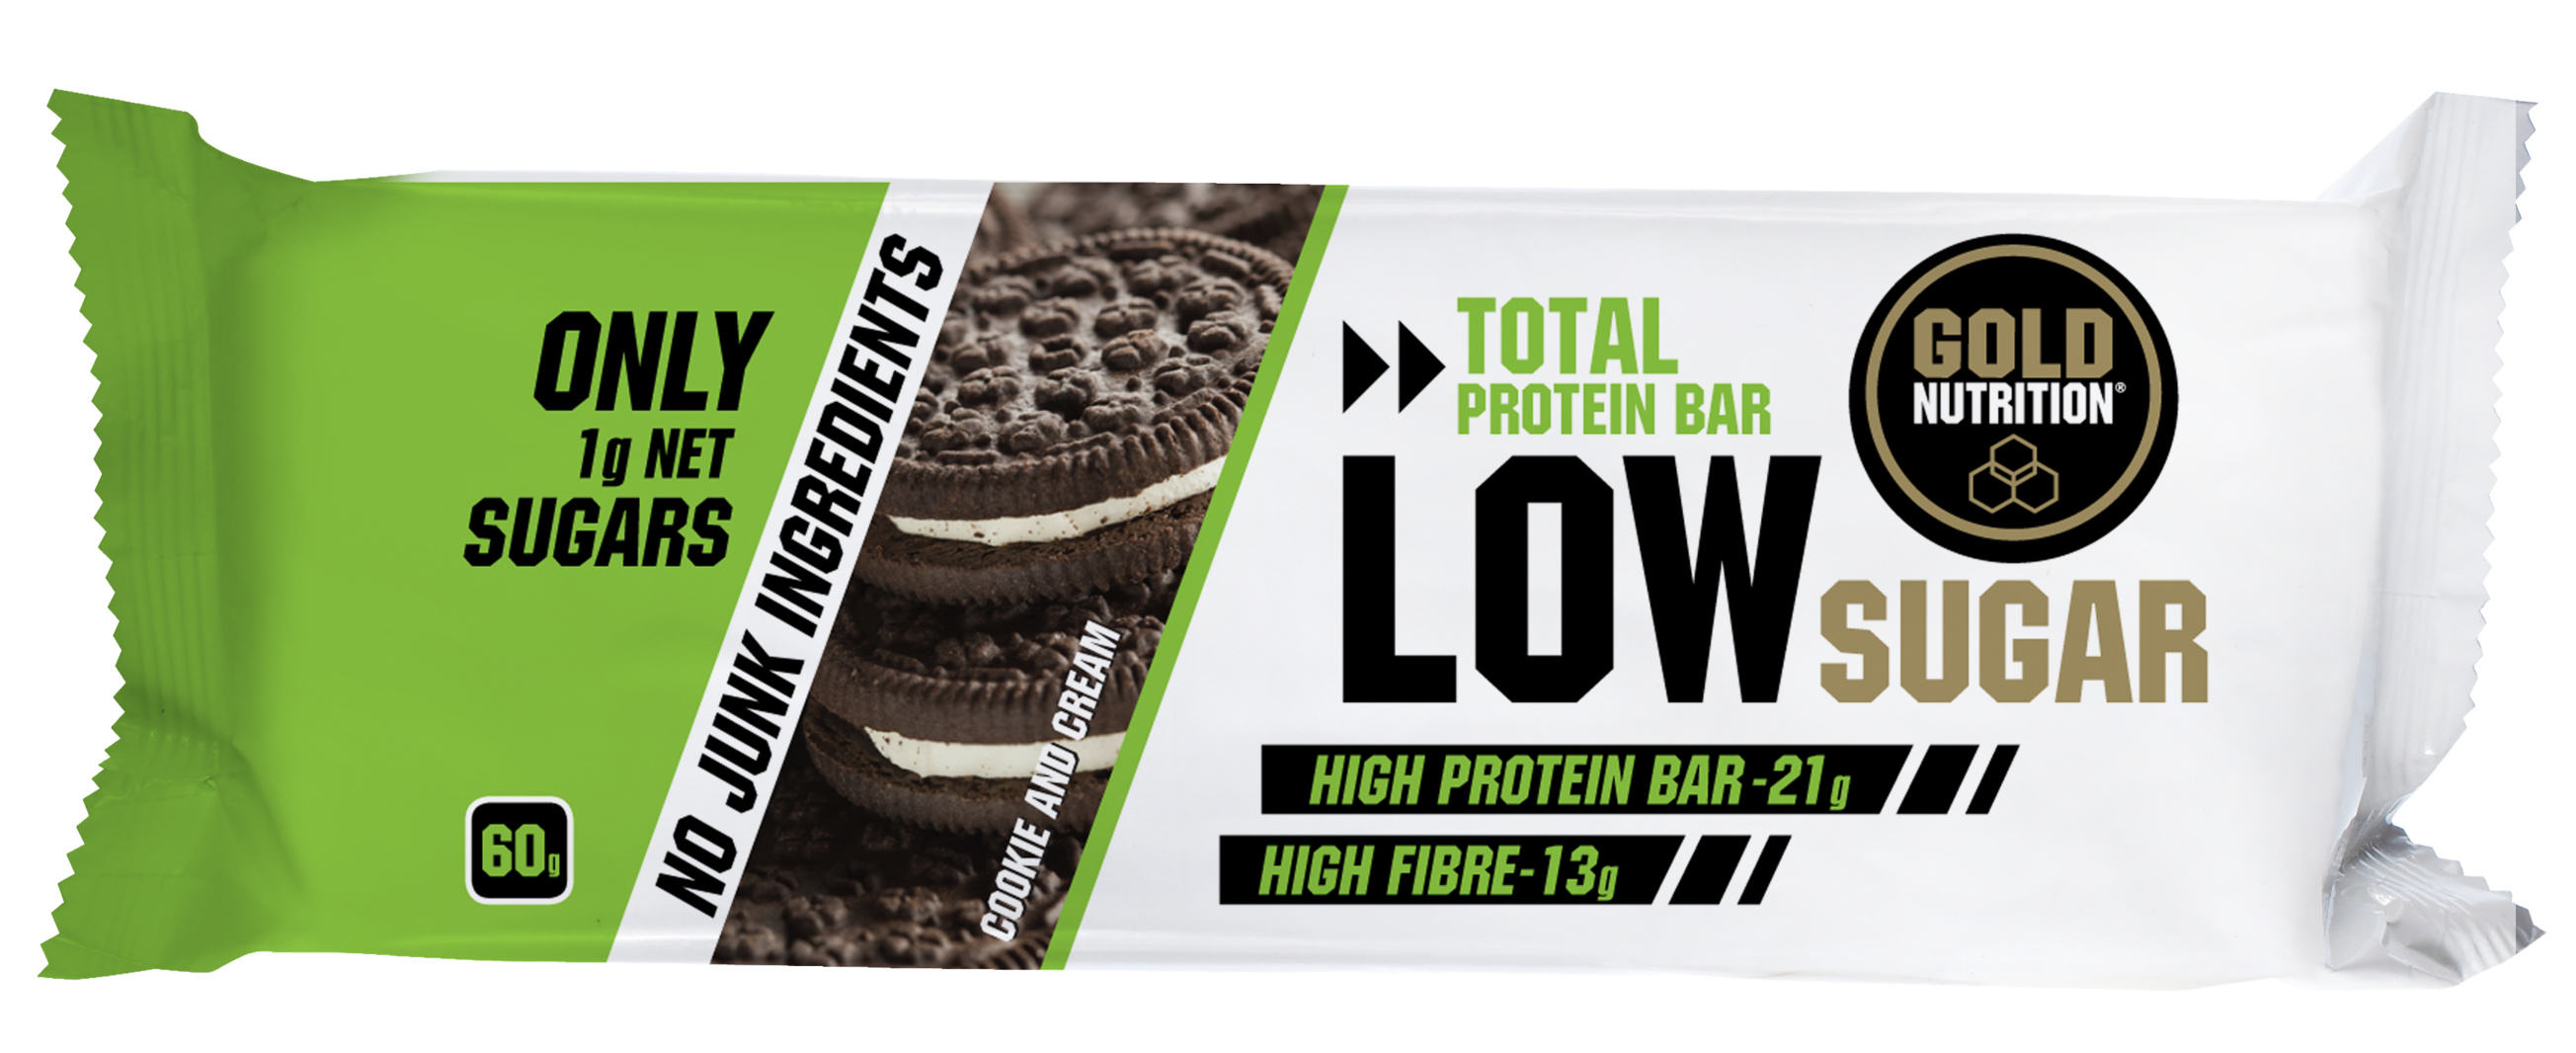 GOLDNUTRITION PROTEIN BAR LOW SUGAR BISCUITI 60 gr